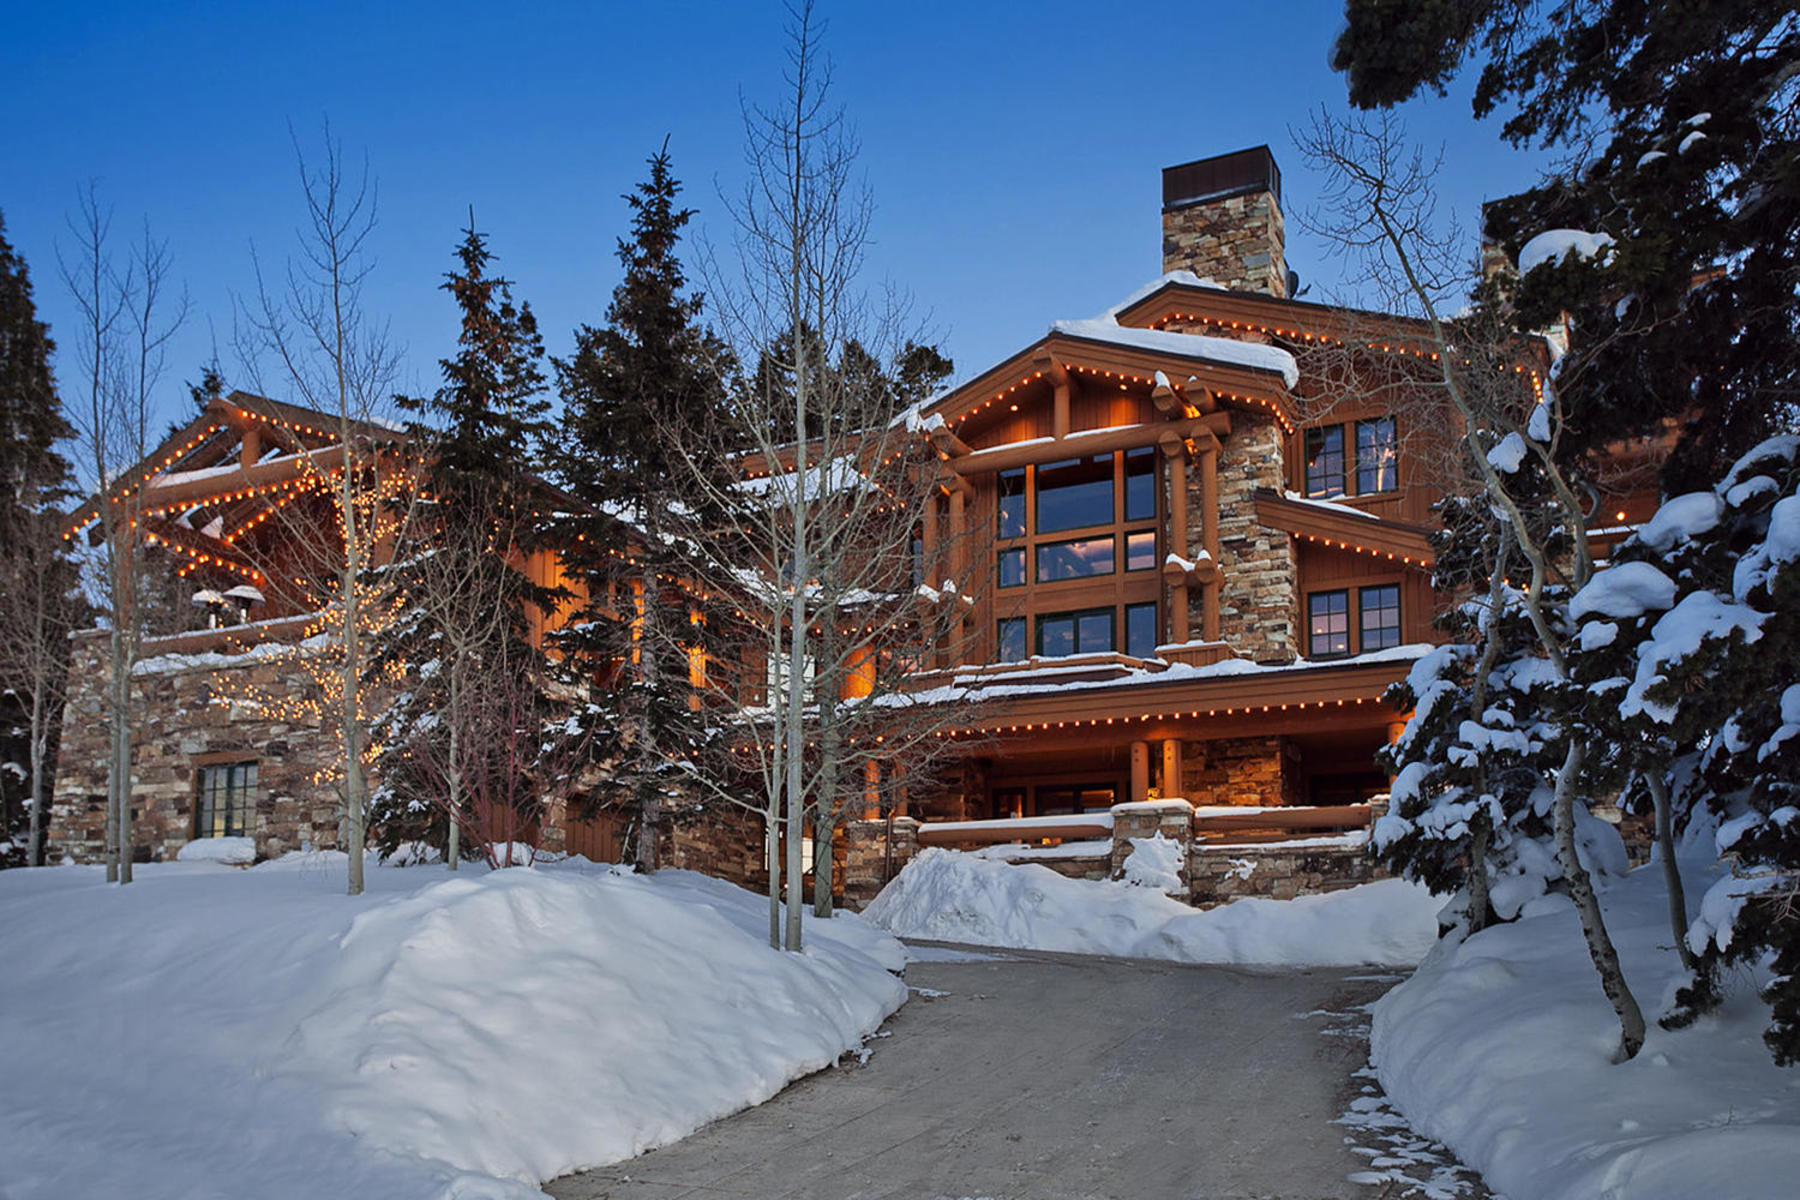 Villa per Vendita alle ore Magnificent Bald Eagle Ski Lodge Home 7831 Hawk Ct Park City, Utah, 84060 Stati Uniti